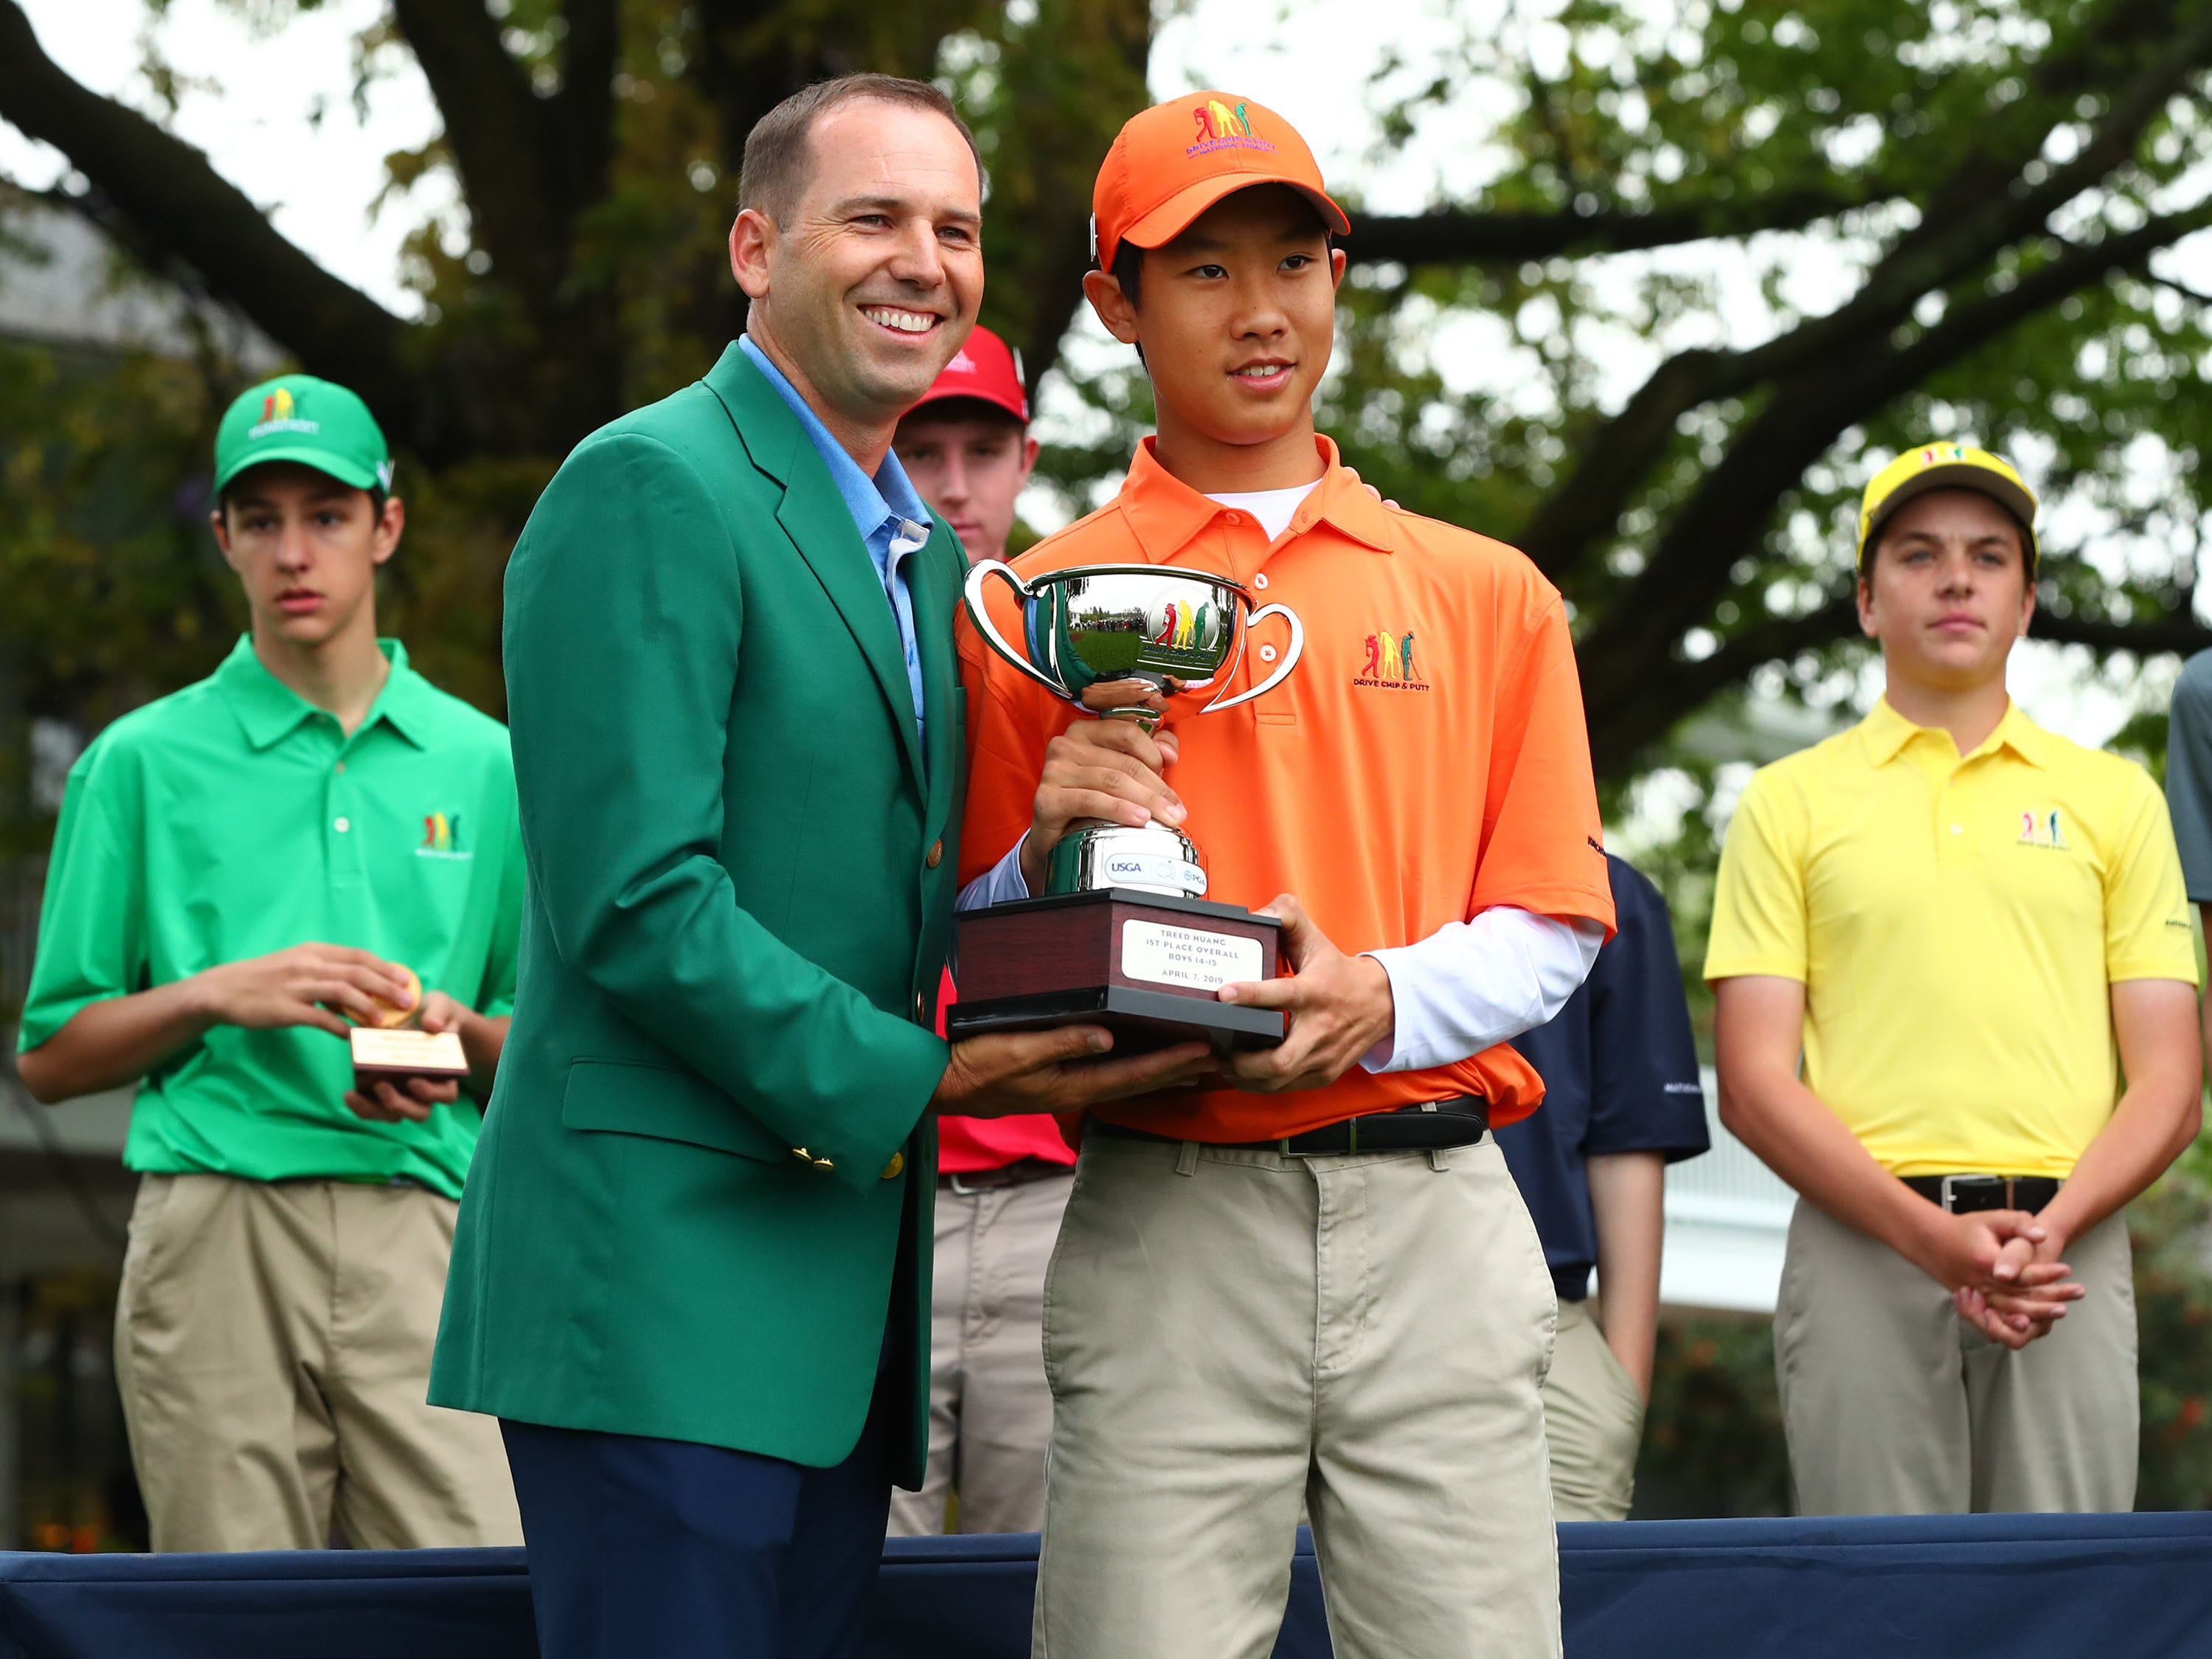 Apr 7, 2019; Augusta, GA, USA; Masters champion Sergio Garcia poses with overall champion Treed Huang of Katy, TexasÊfor the boys 14-15 age group, hits his putt during the finals of the Drive, Chip and Putt competition at Augusta National Golf Club. Mandatory Credit: Rob Schumacher-USA TODAY Sports